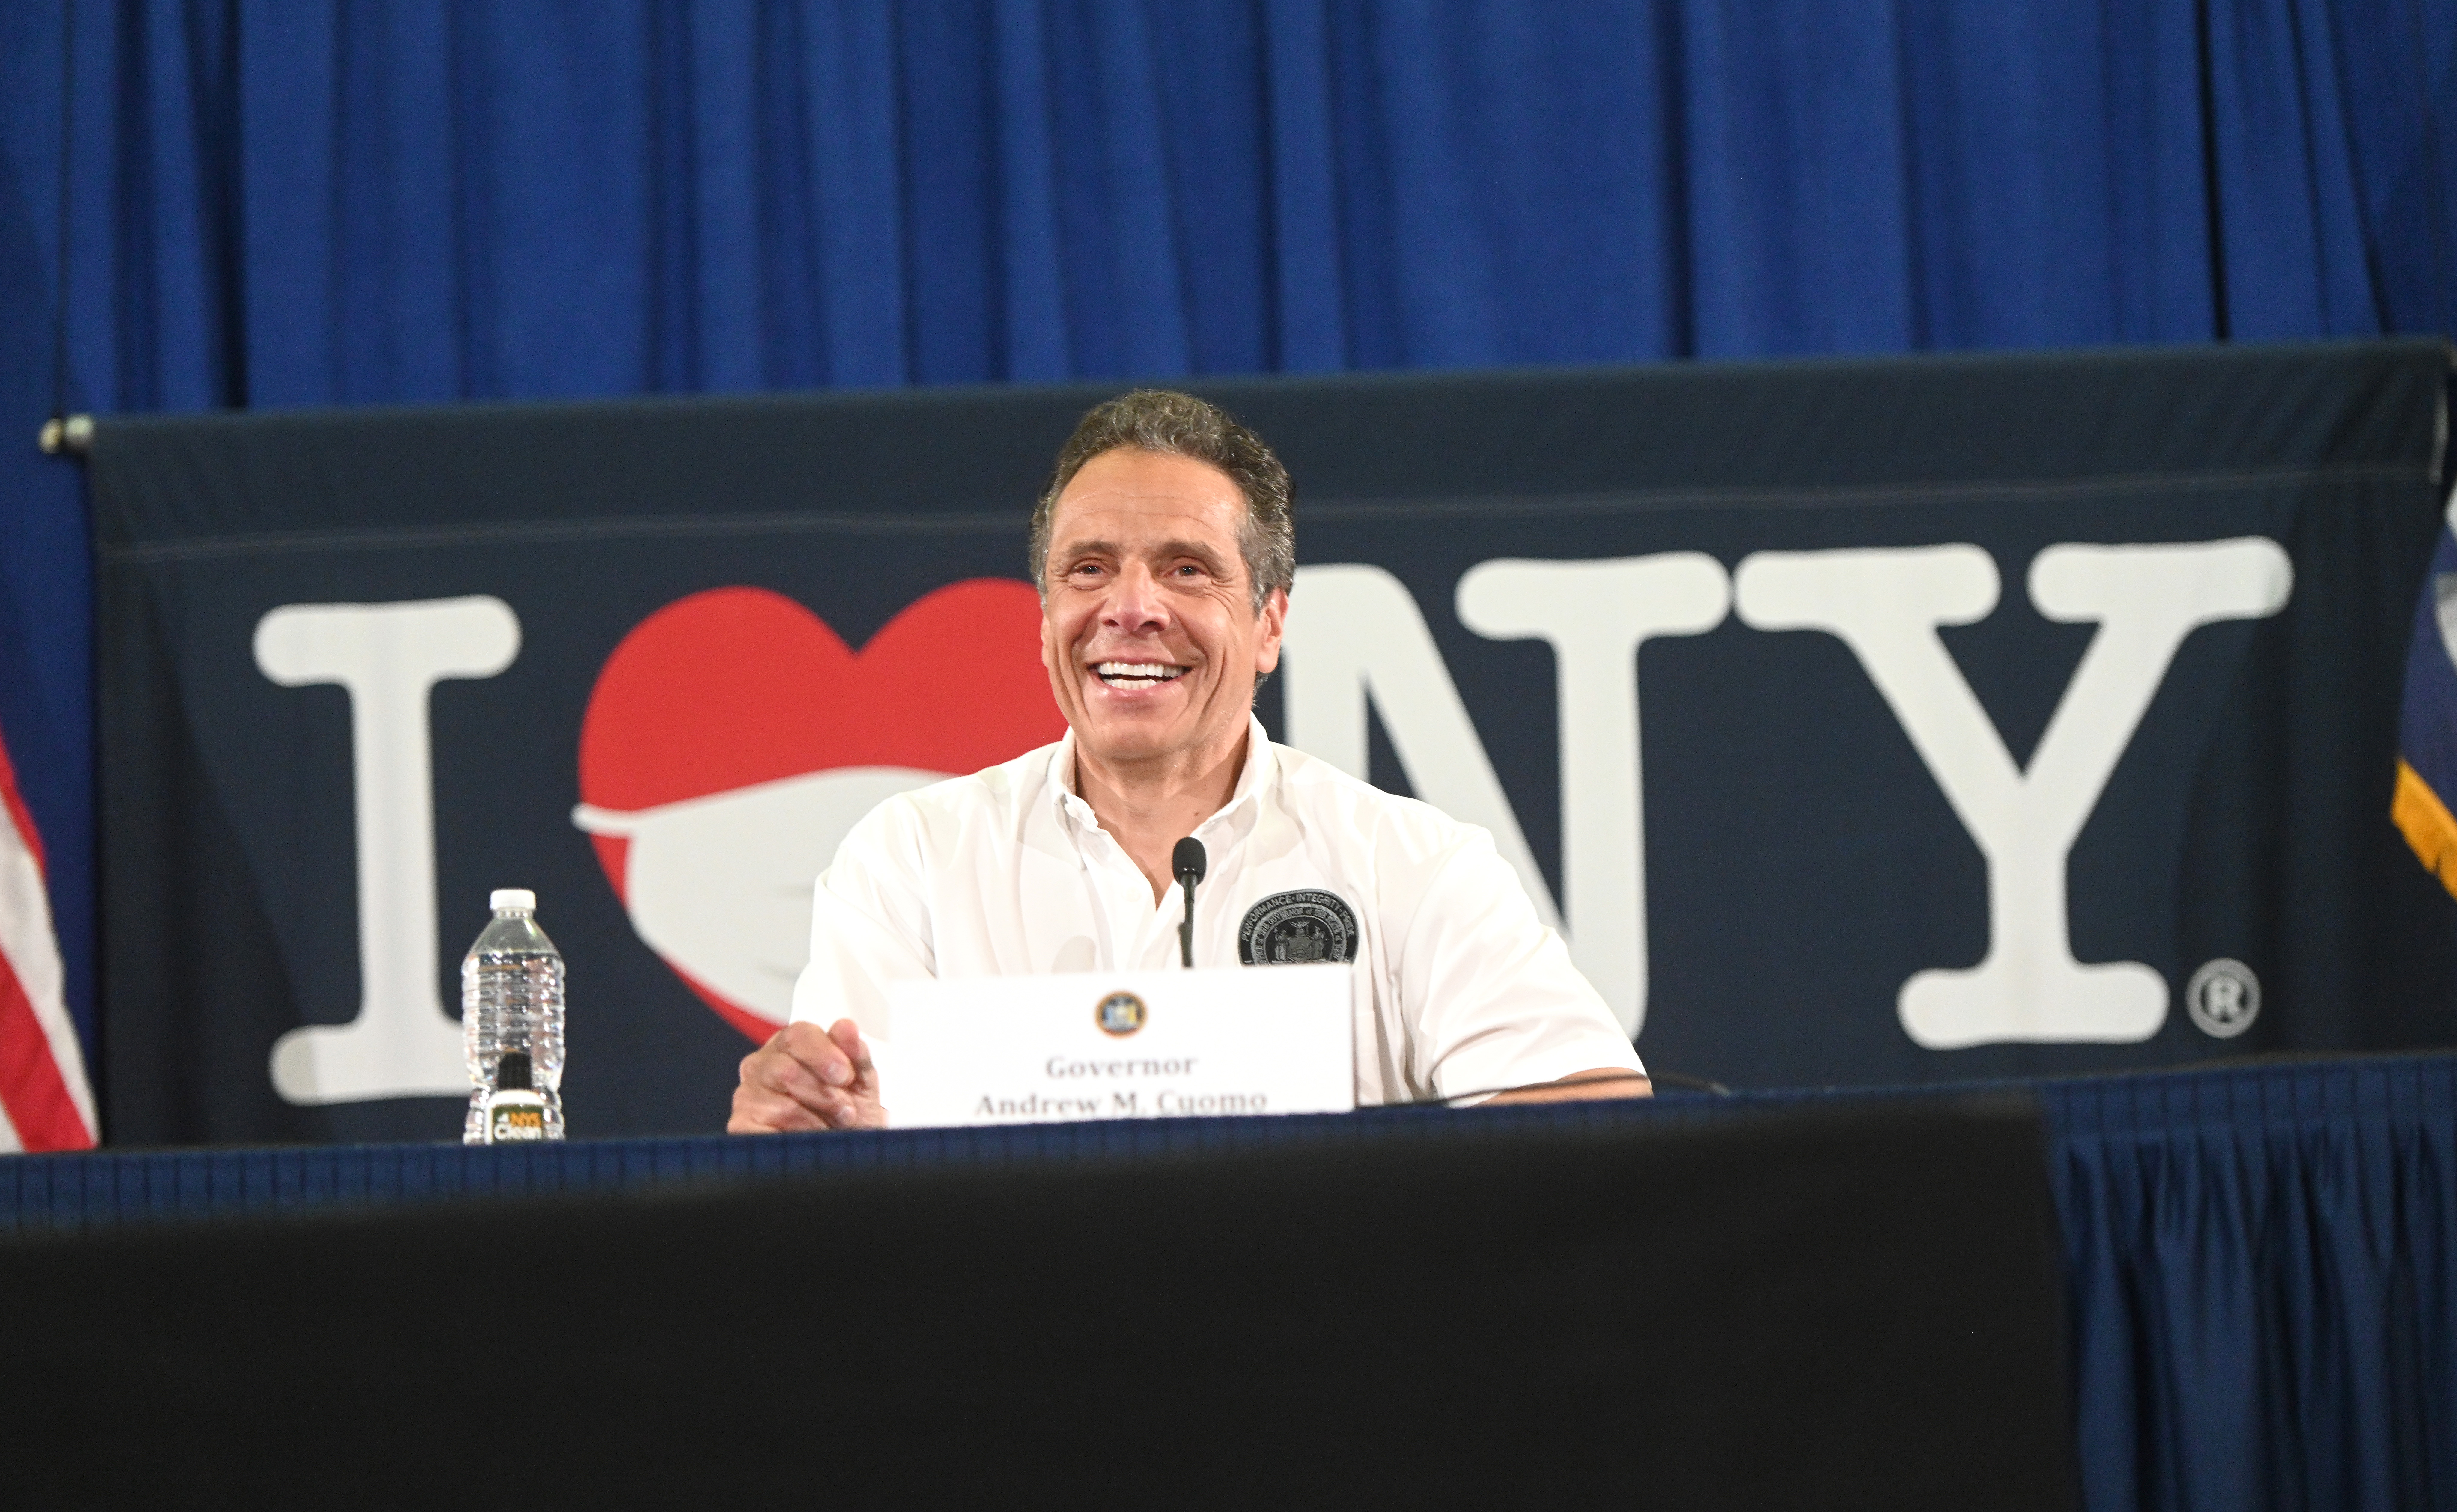 Cuomo Announces Curfew in NYC to Handle Riots